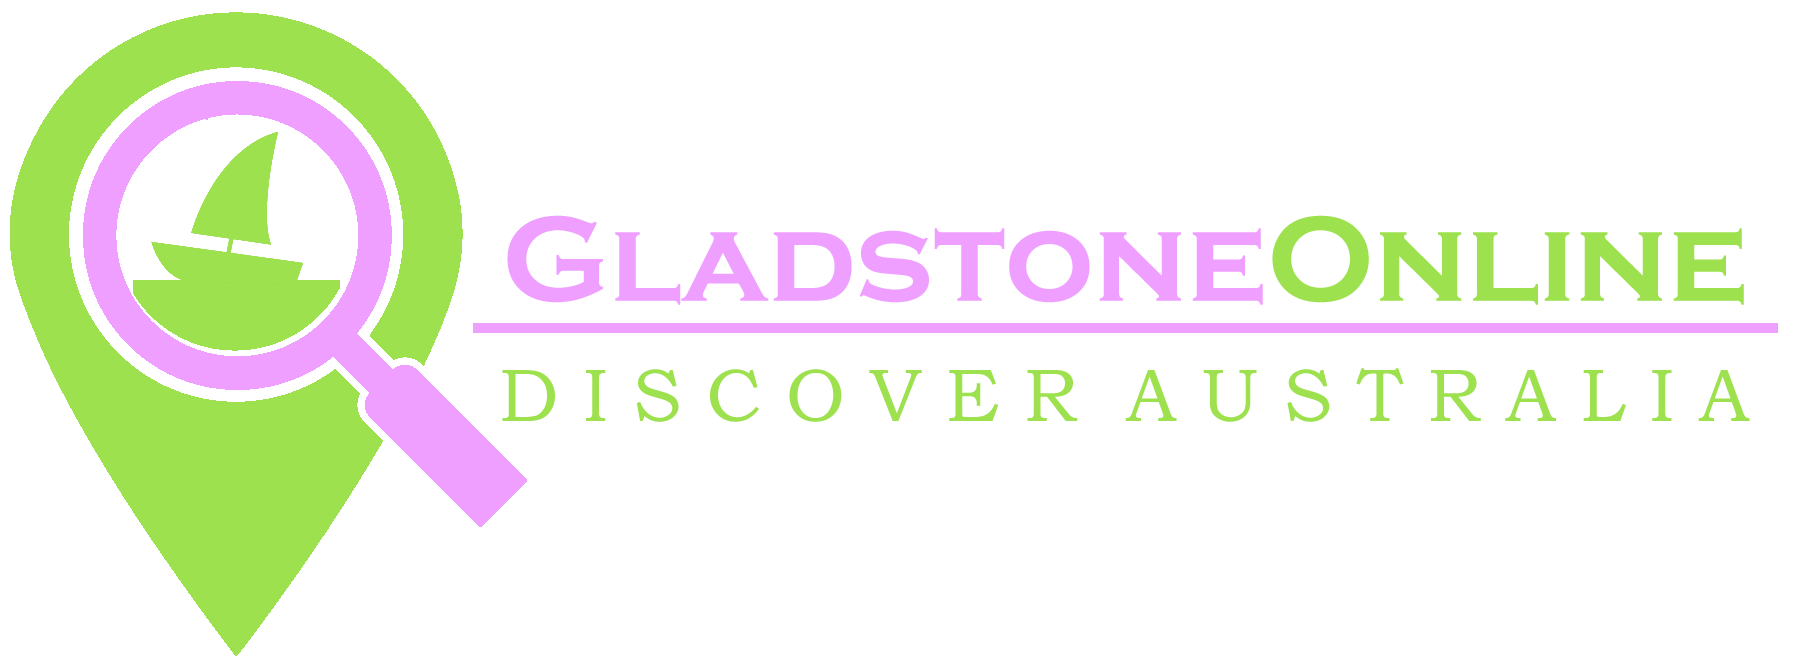 Gladstone | Find and Review local Gladstone Businesses|